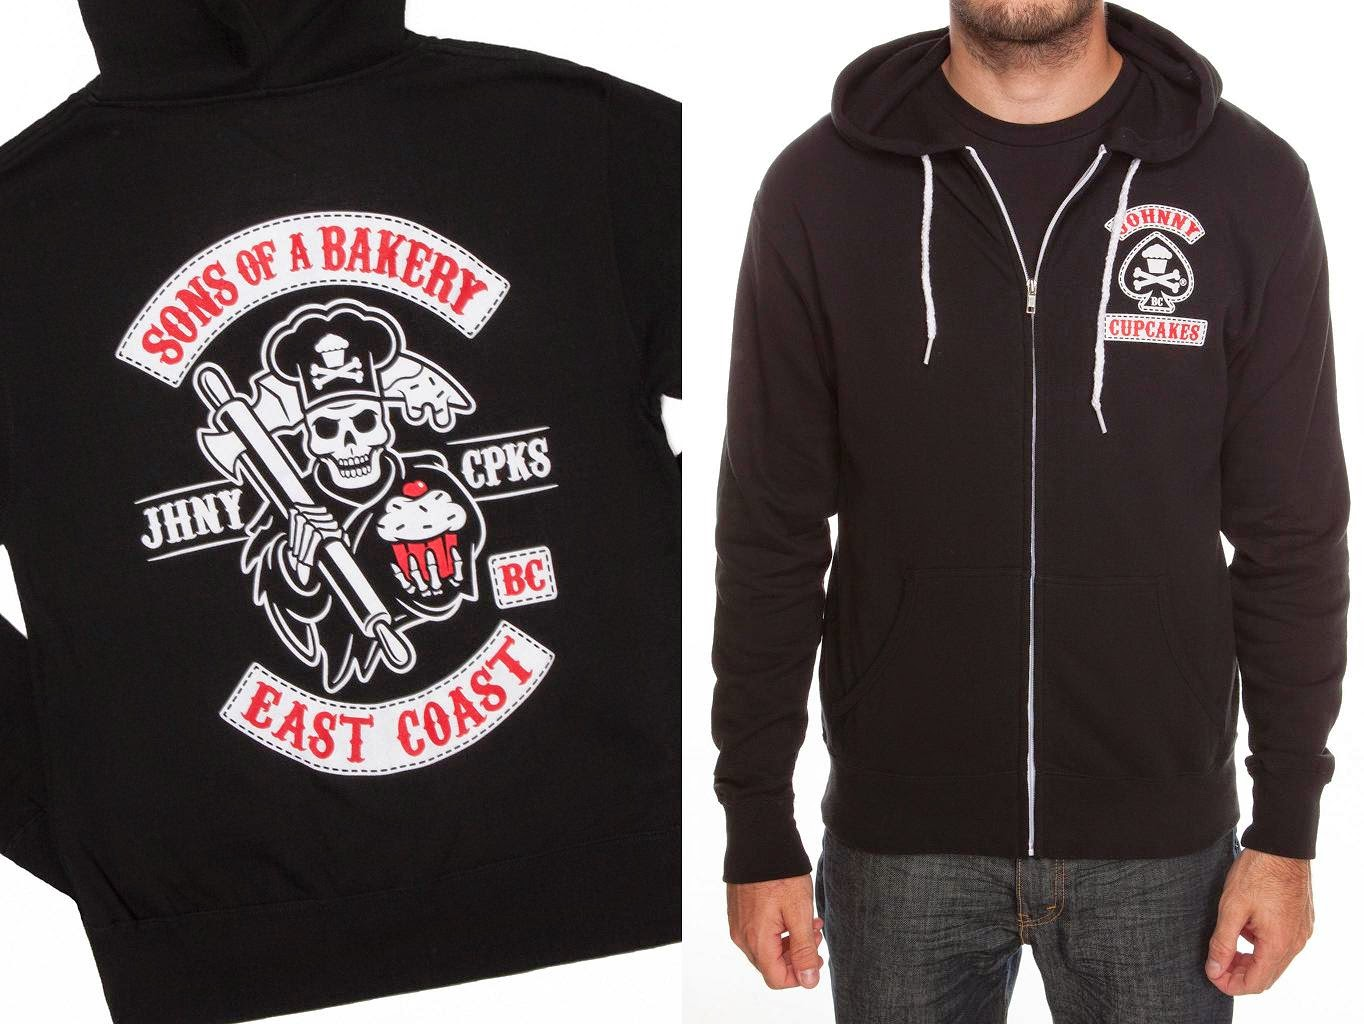 """Sons of a Bakery"" Sons of Anarchy East Coast Hoodie by Johnny Cupcakes"